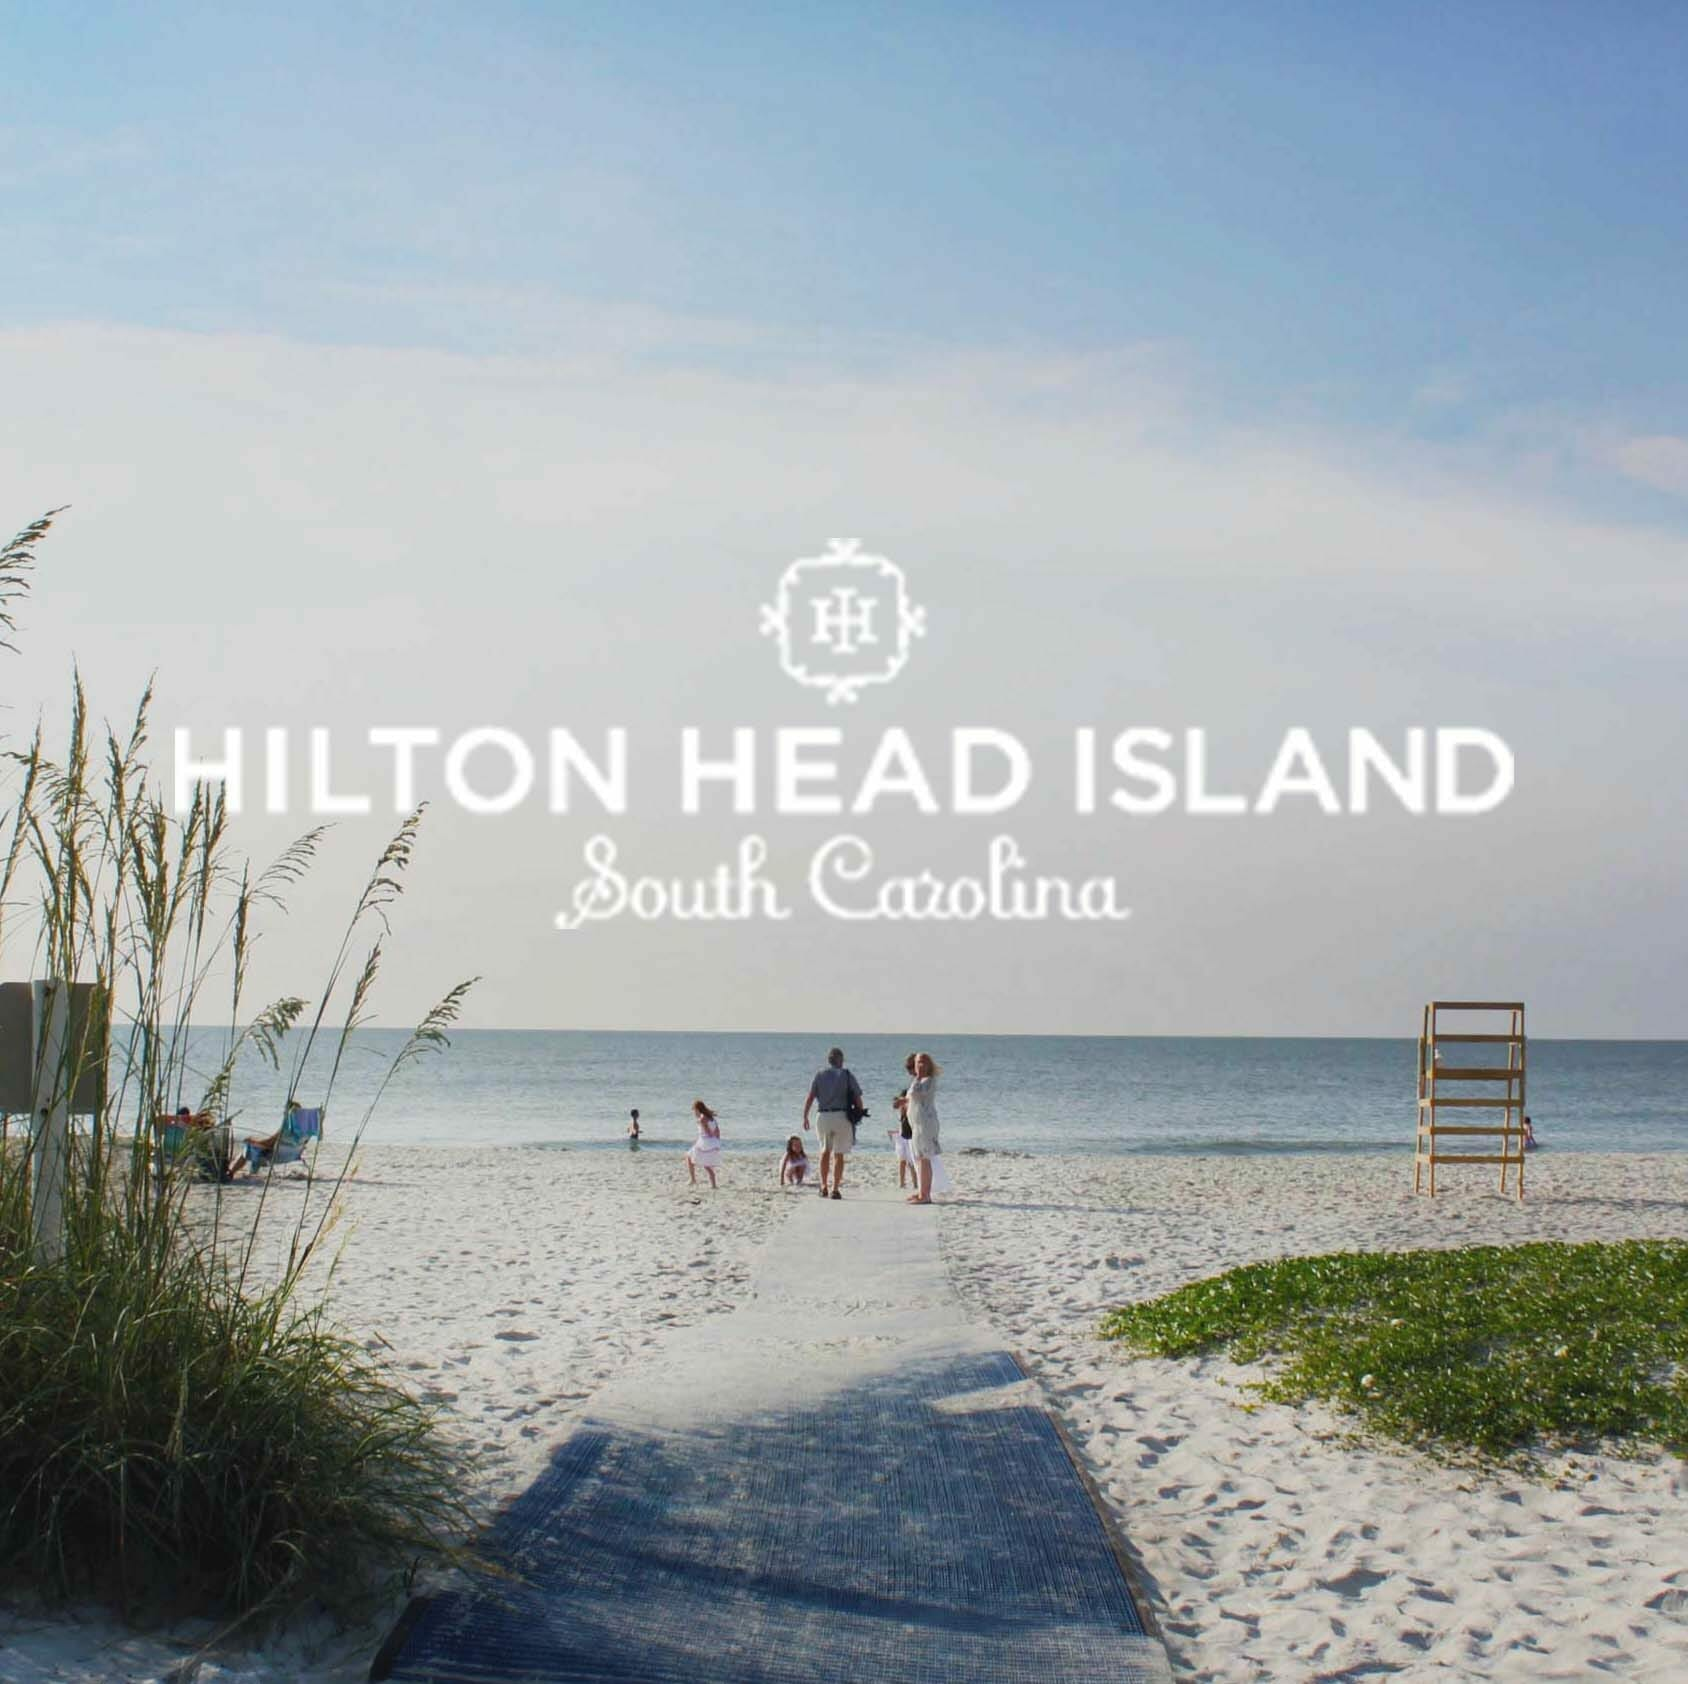 View of beach in Hilton Head Island with logo over top